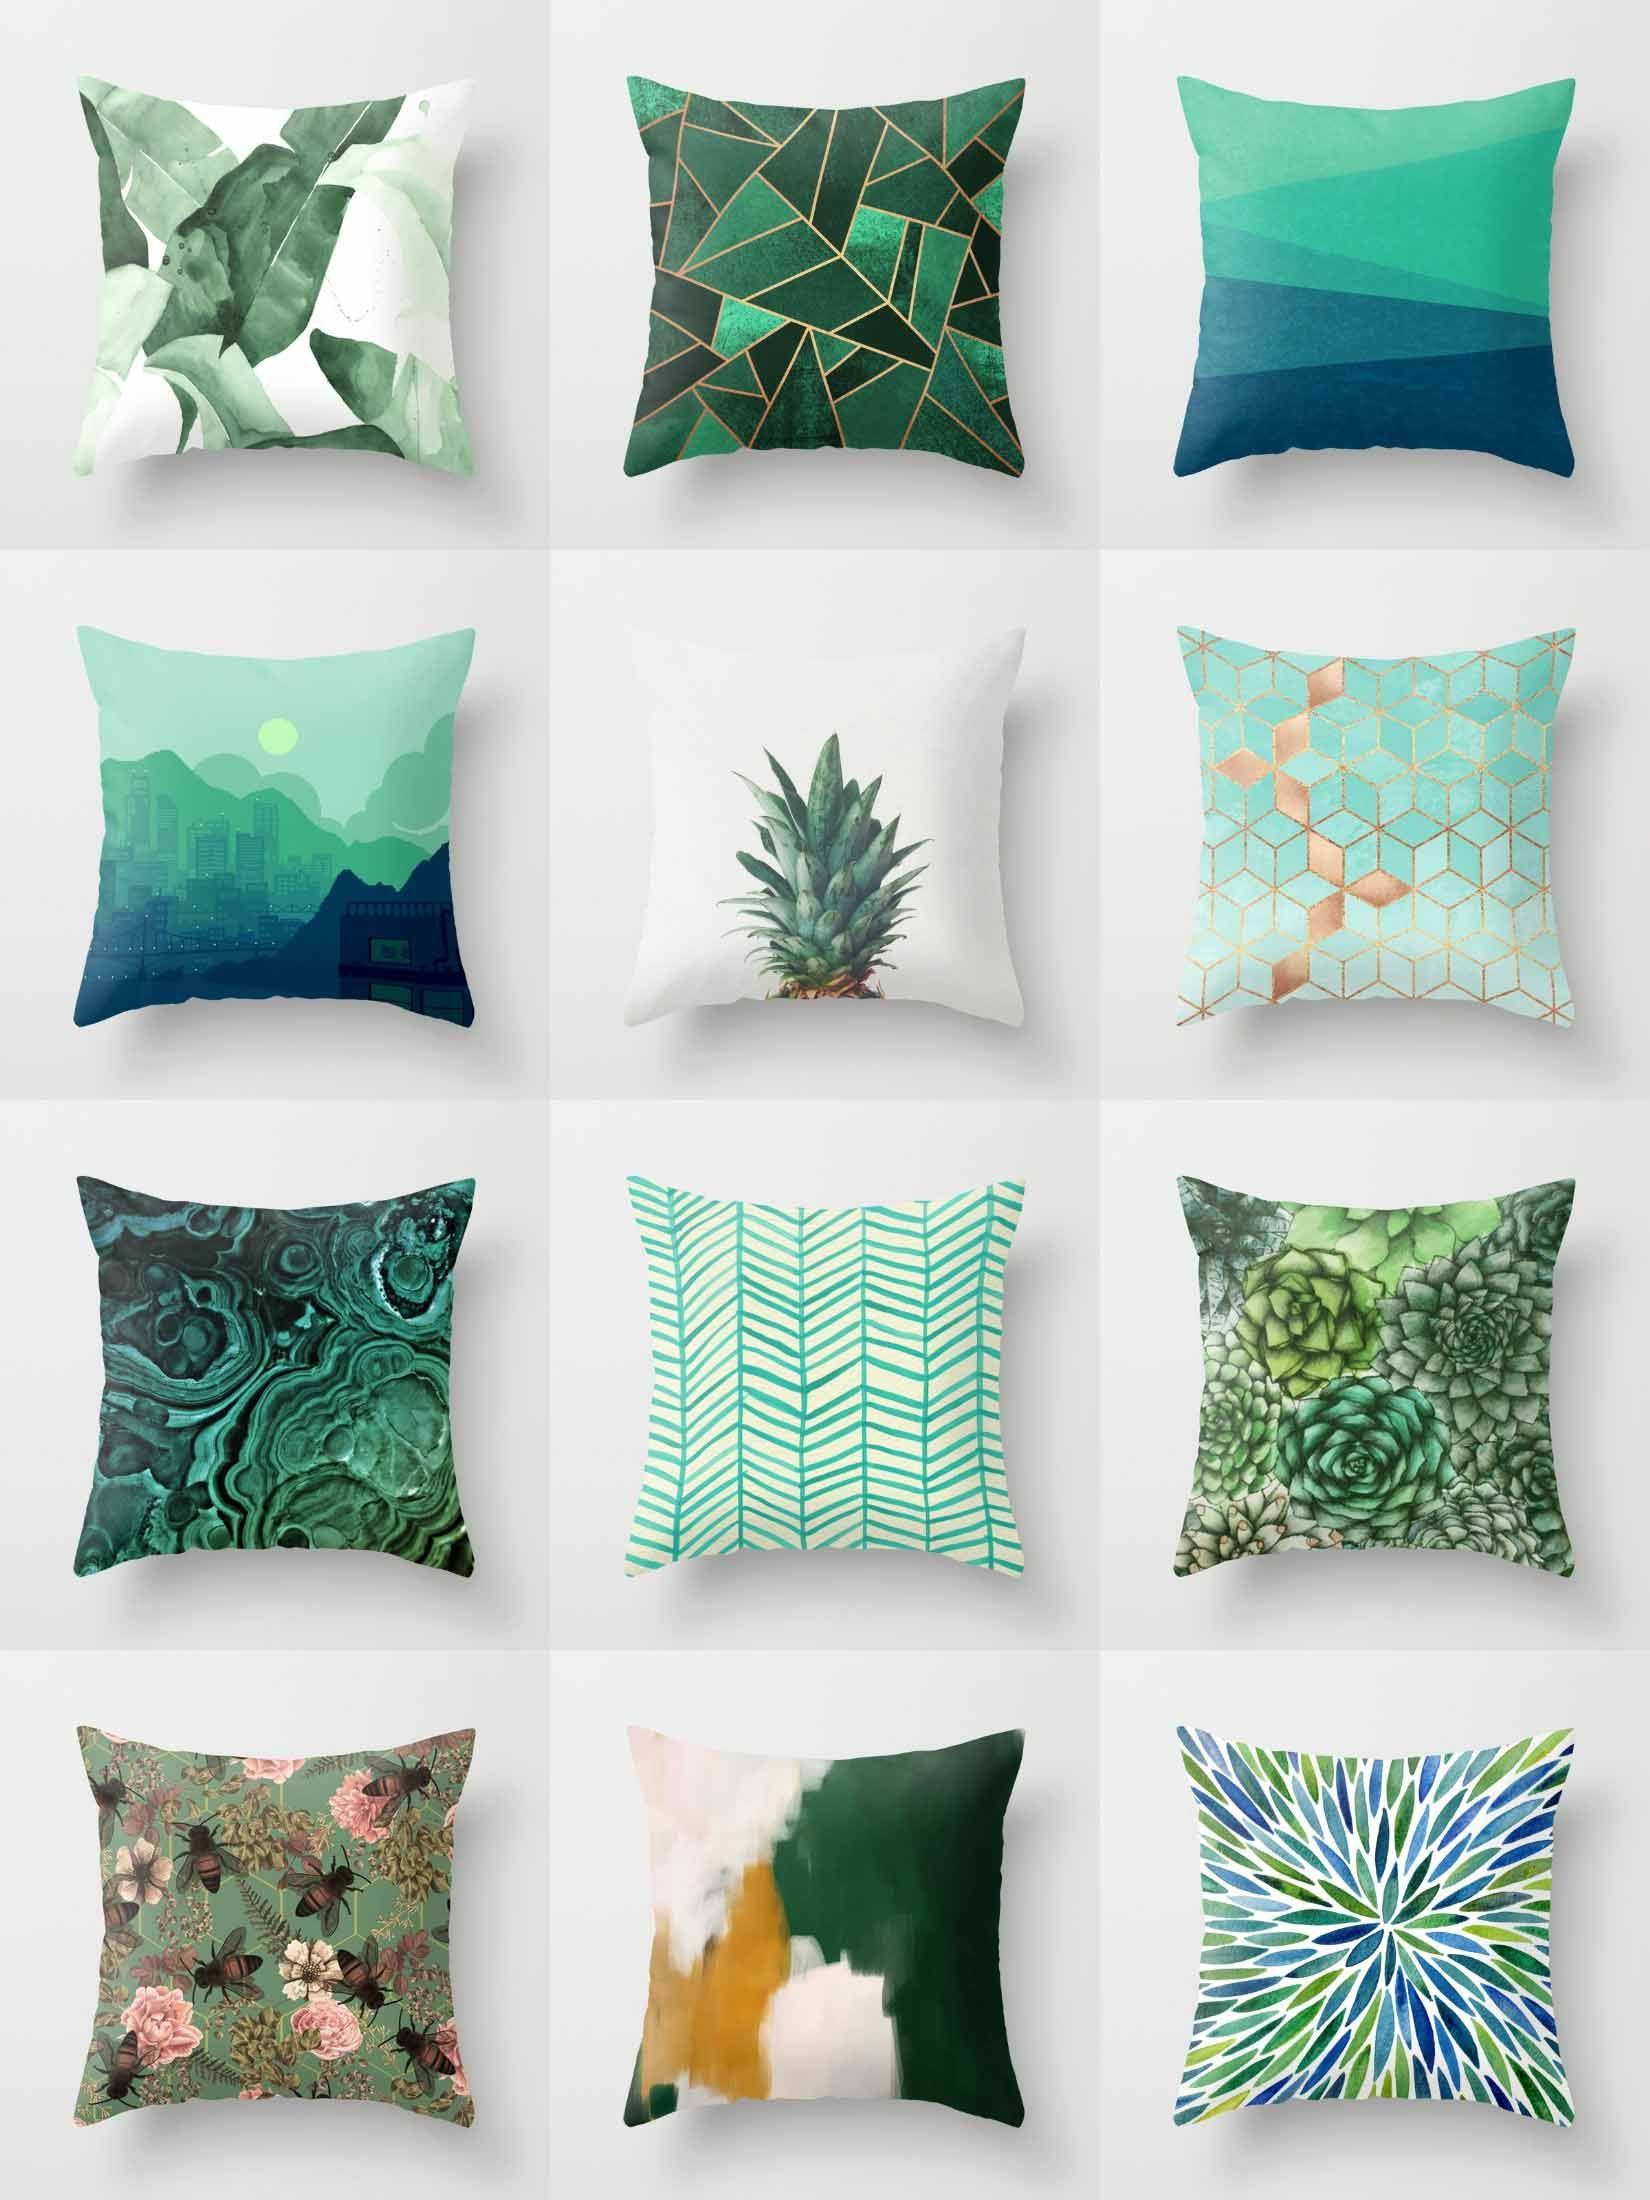 society green throw pillows  society is home to hundreds of  - society green throw pillows  society is home to hundreds of thousands ofartists from around